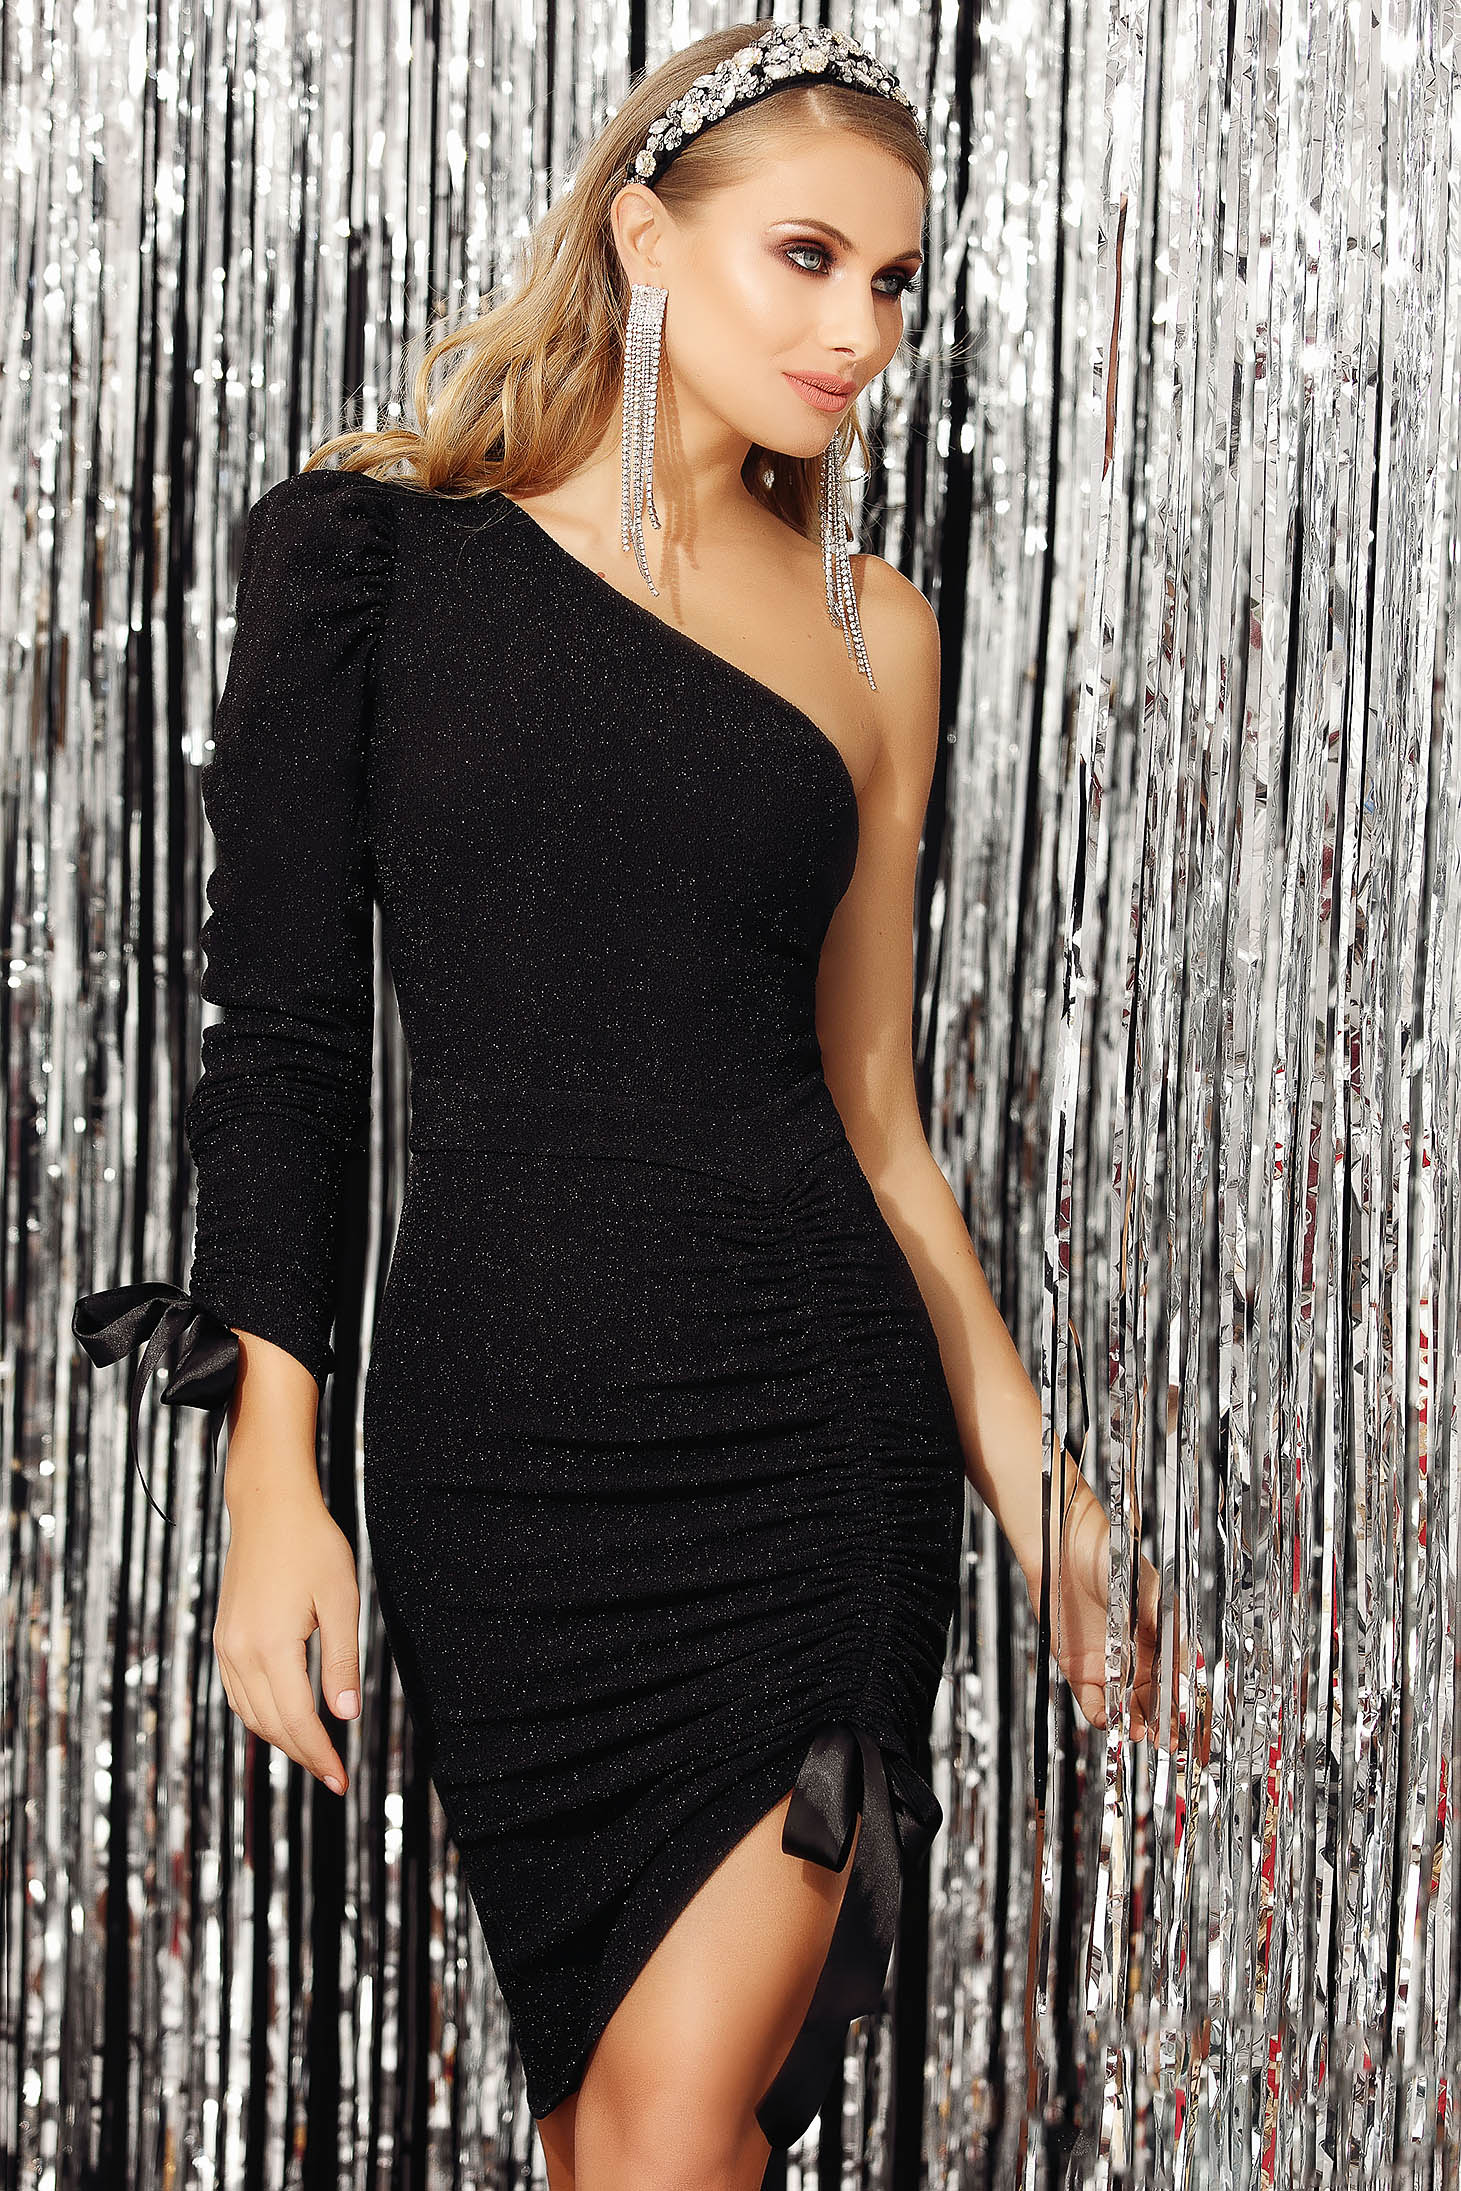 Black dress occasional pencil asymmetrical sleeveless with glitter details